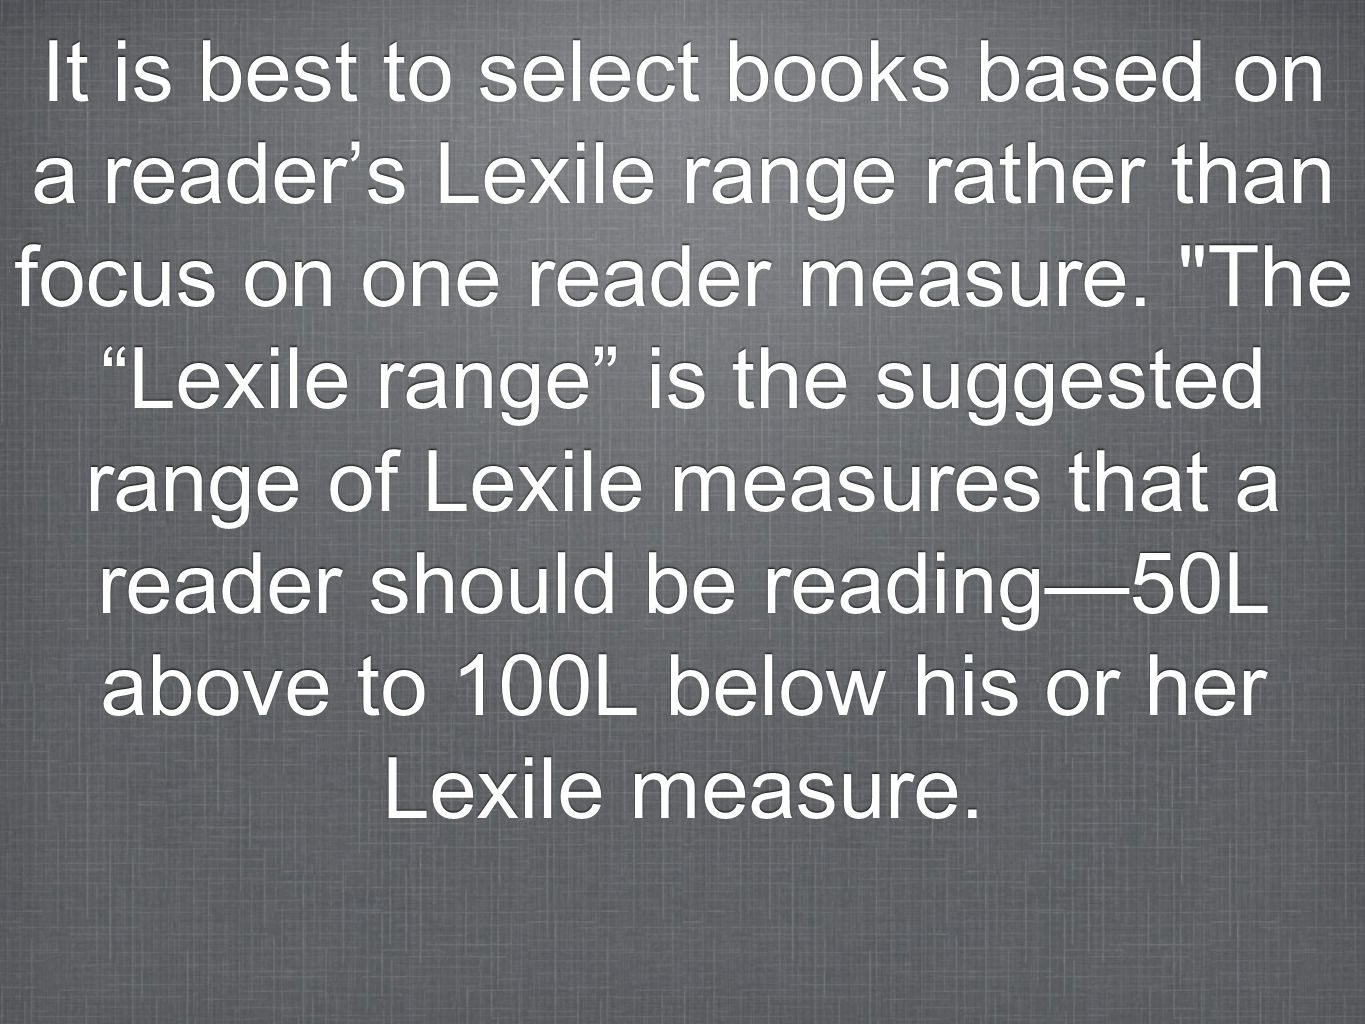 It is best to select books based on a readers Lexile range rather than focus on one reader measure.